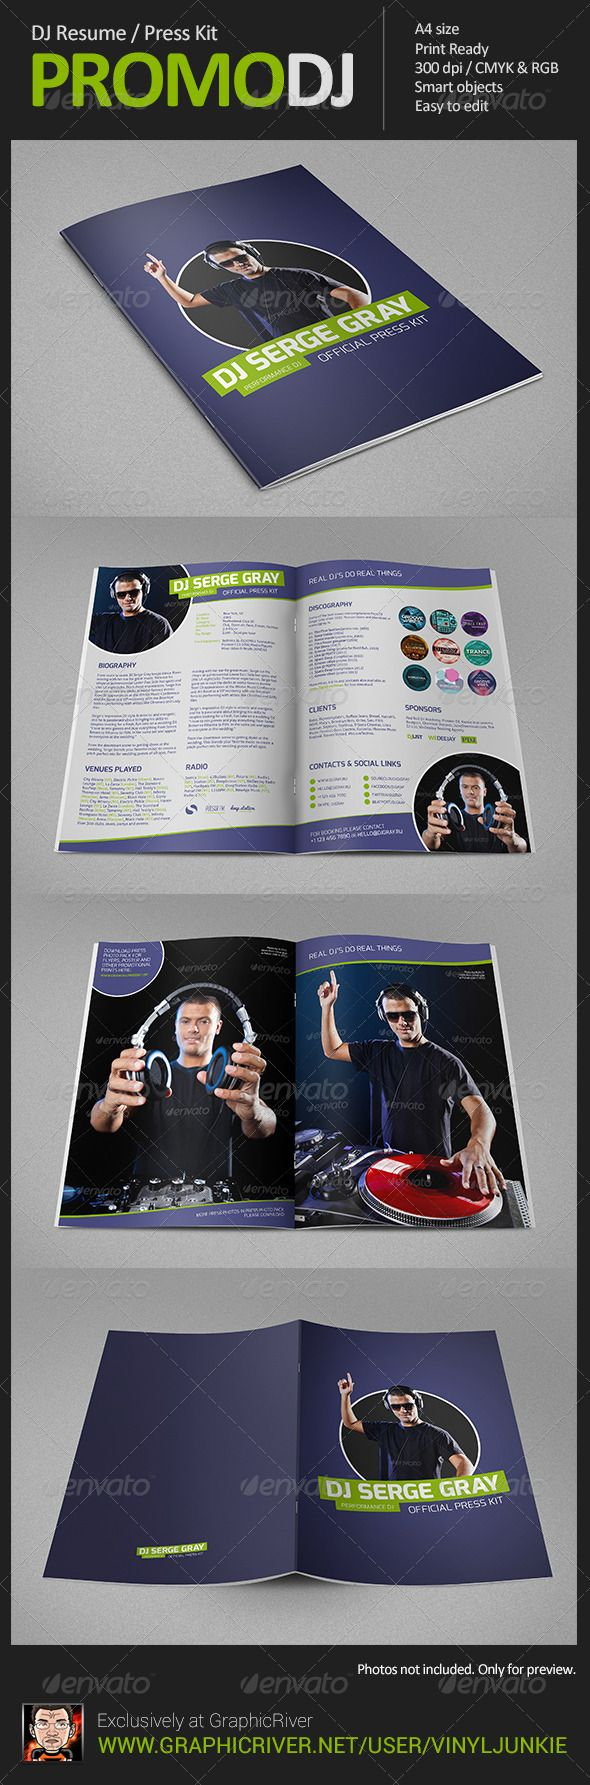 dj cv template download - Selo.l-ink.co